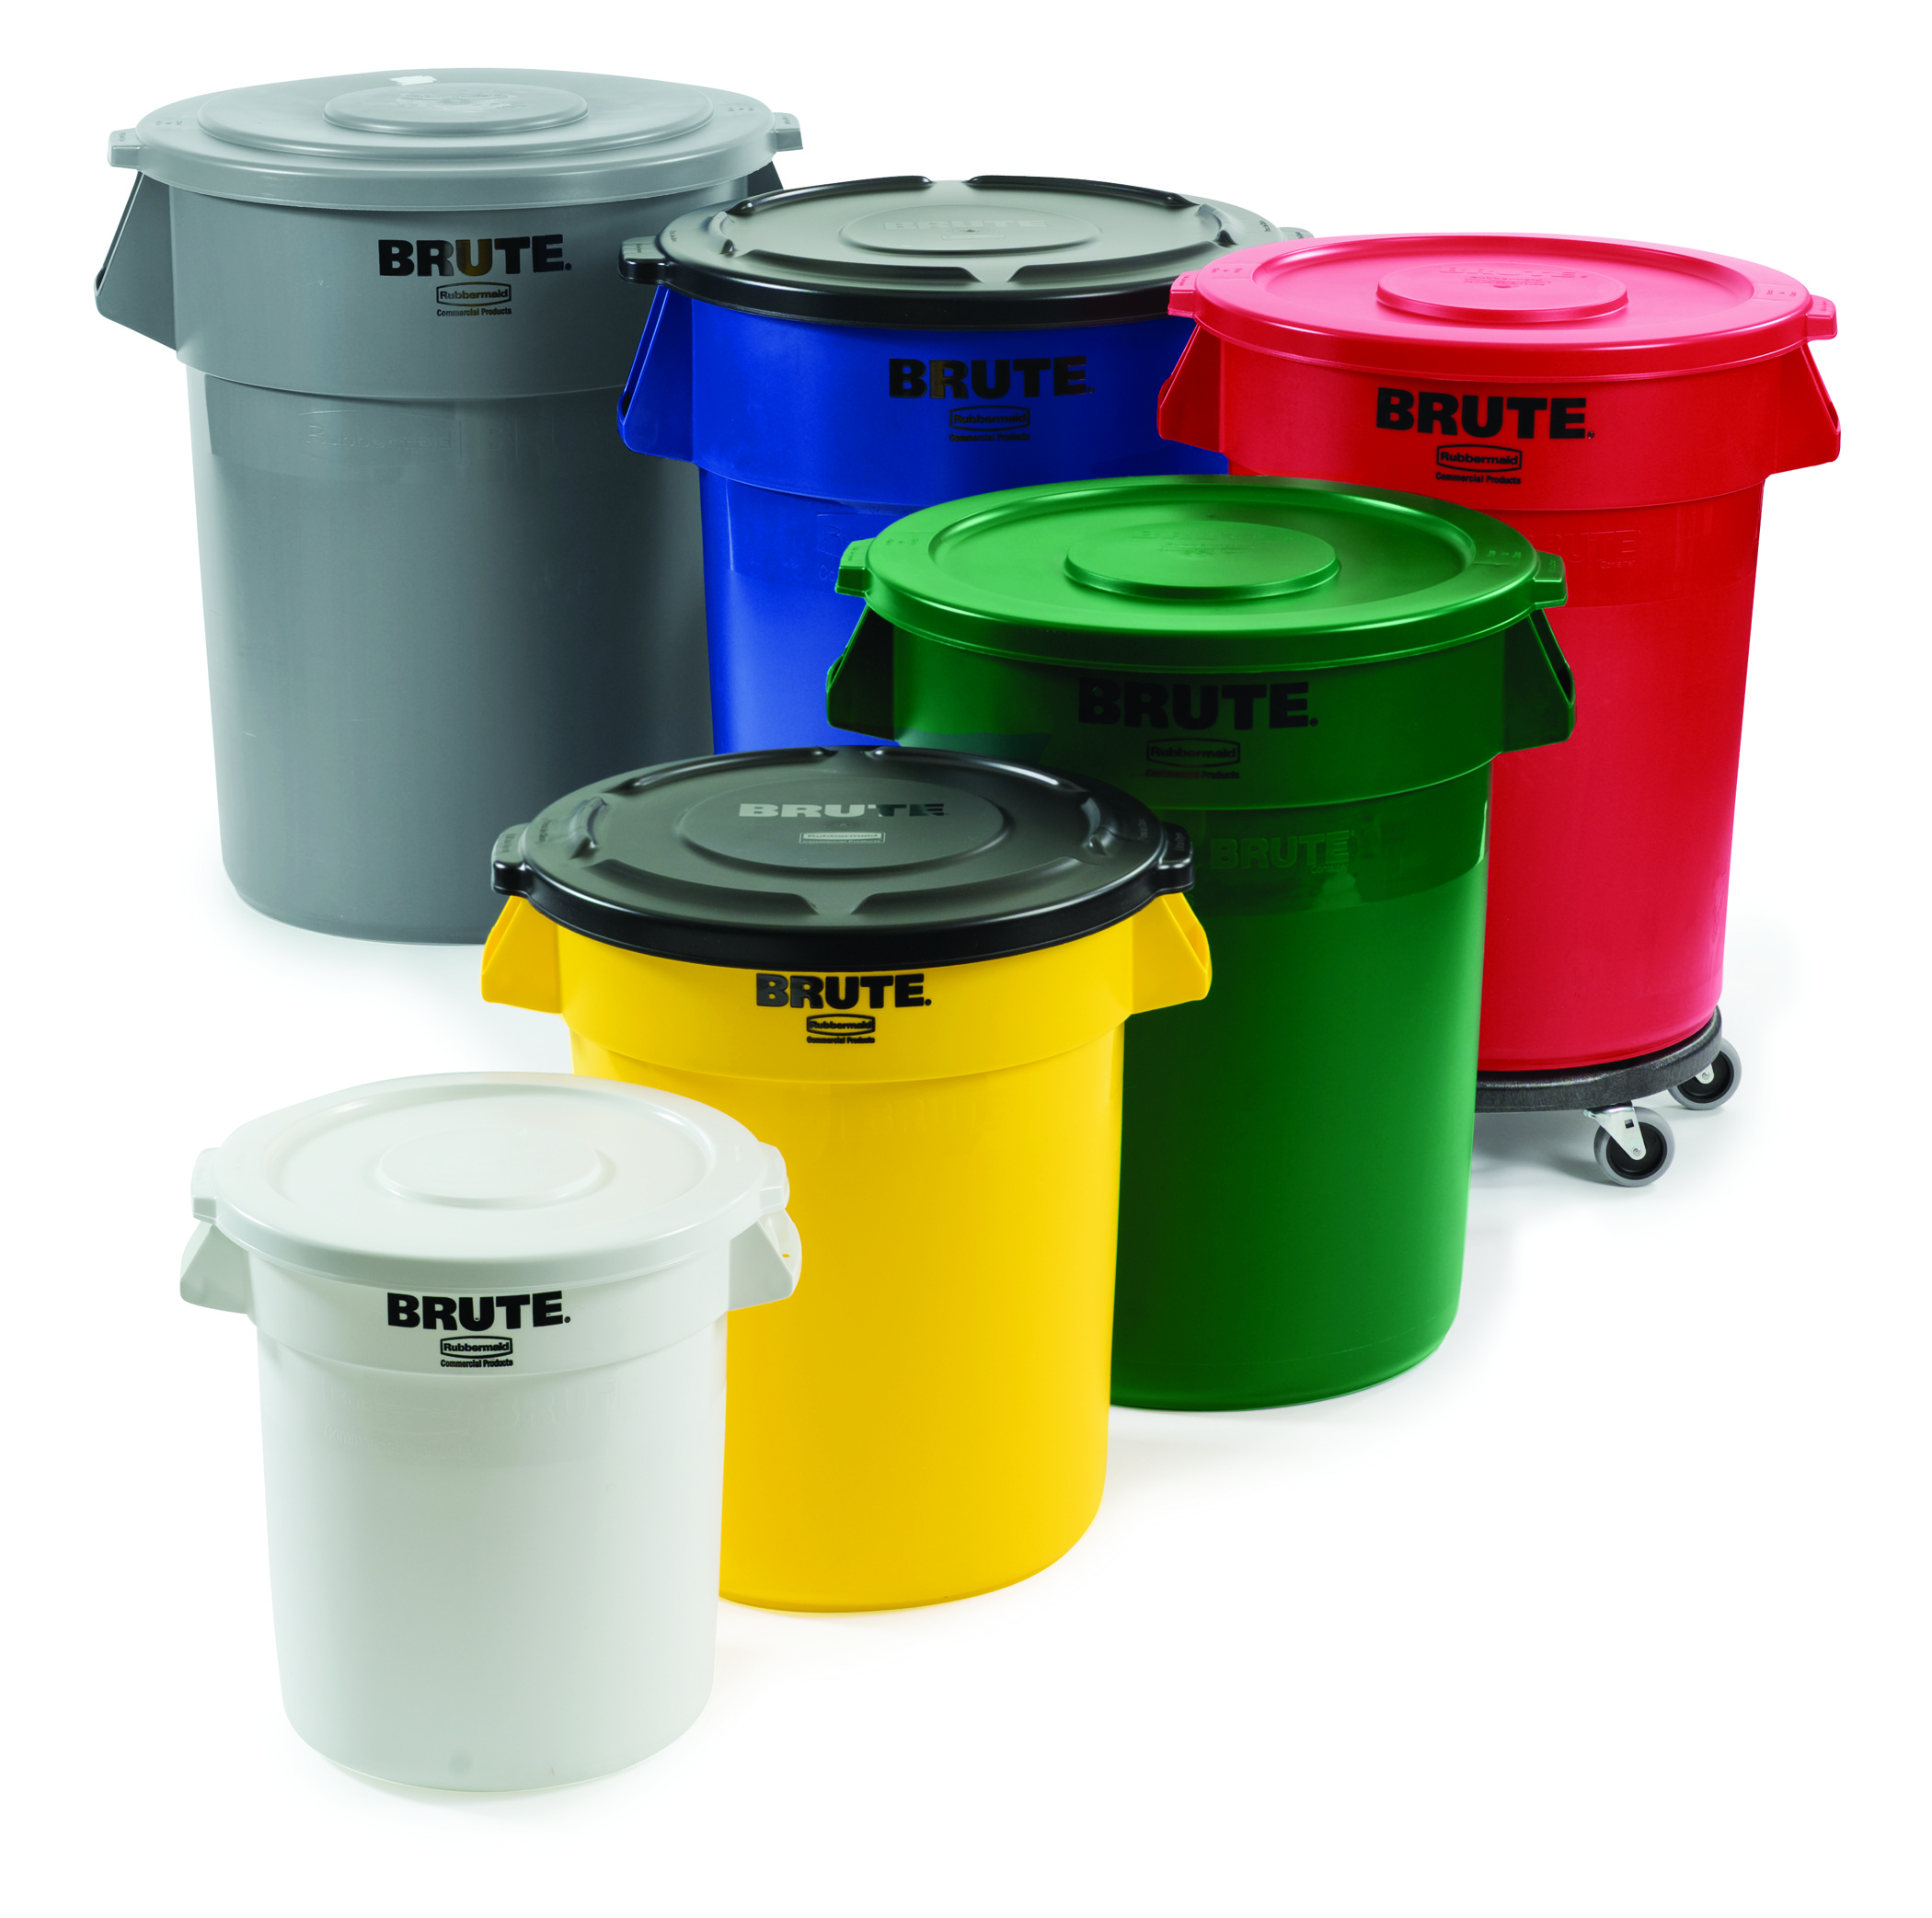 Rubbermaid 10 Gallon Brute Container Trashcans Warehouse